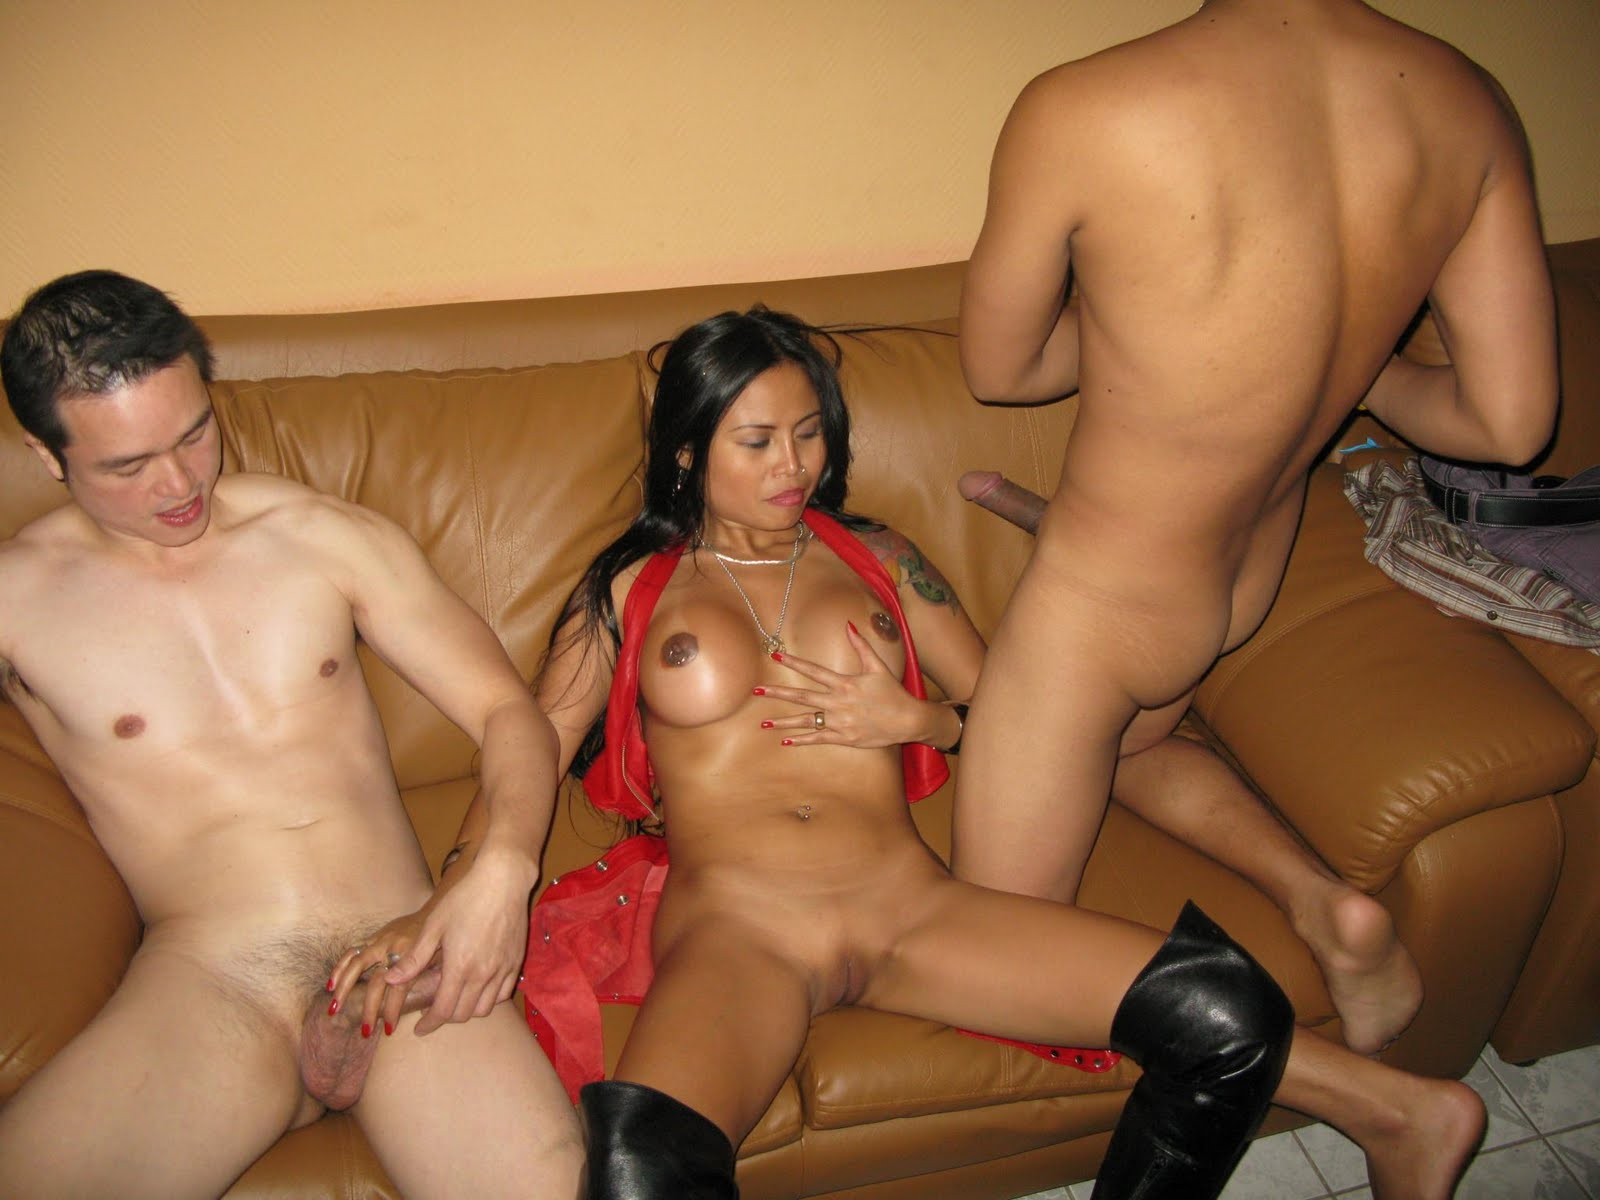 Asian%2BGangbang%2BSluts%2BAt%2BSex%2BParty%2Bwww.GutterUncensored.com%2B034 slut hentai